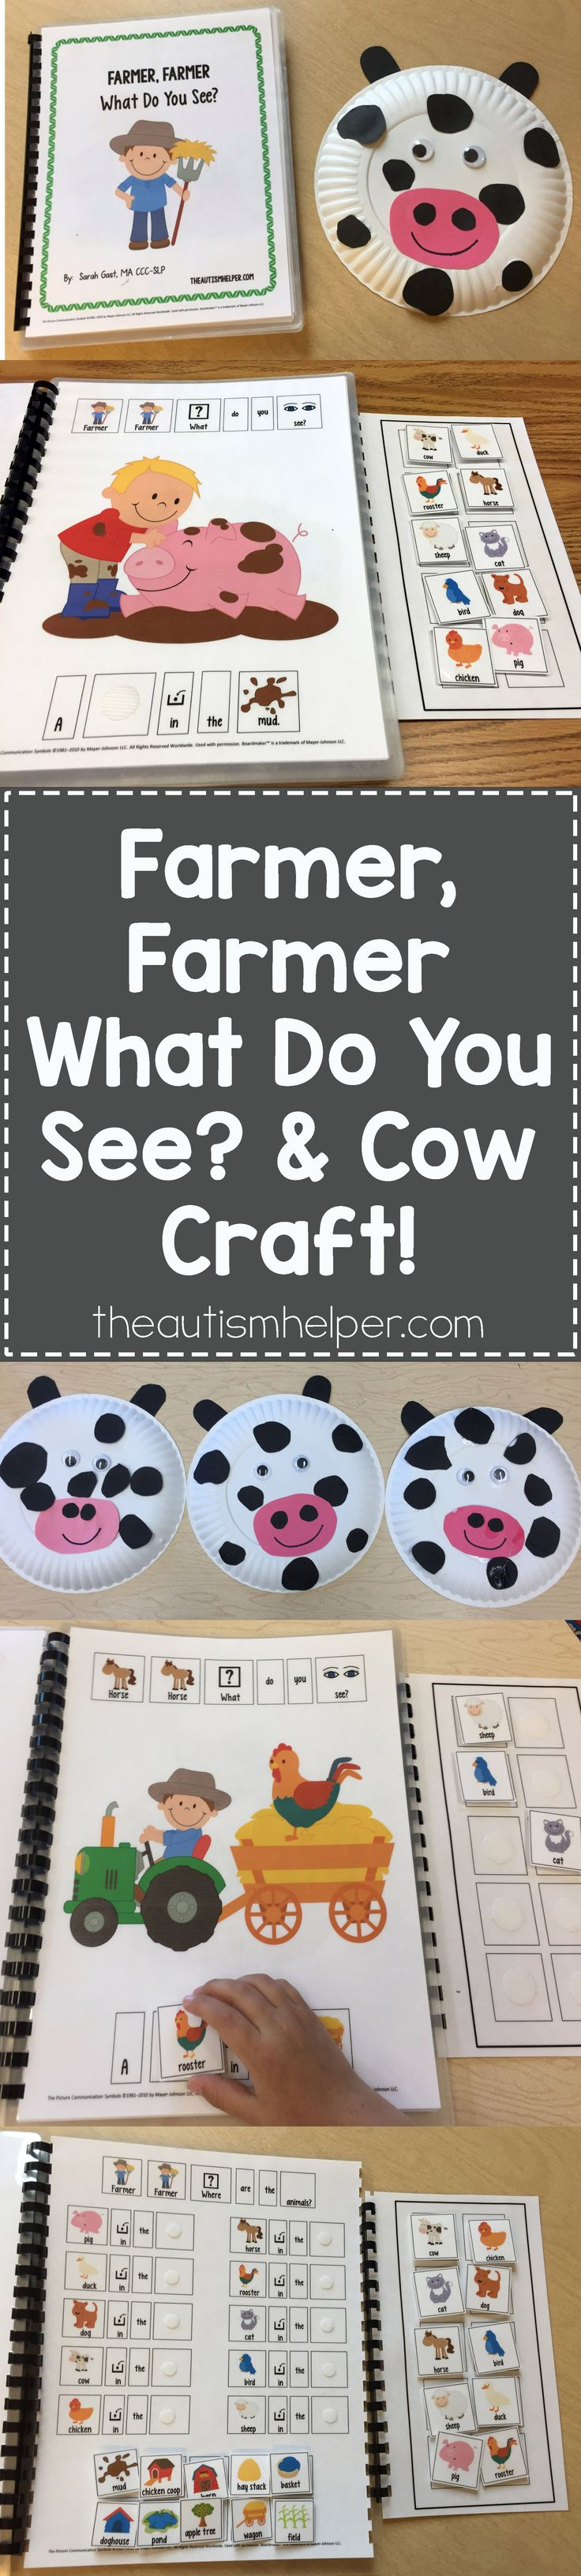 "Sarah's sticking with her farm theme this week & using the adapted book ""Farmer, Farmer What Do You See?"" plus making a Cow Craft out of paper plates. Another great book + activity combo!! From theautismhelper.com #theautismhelper"